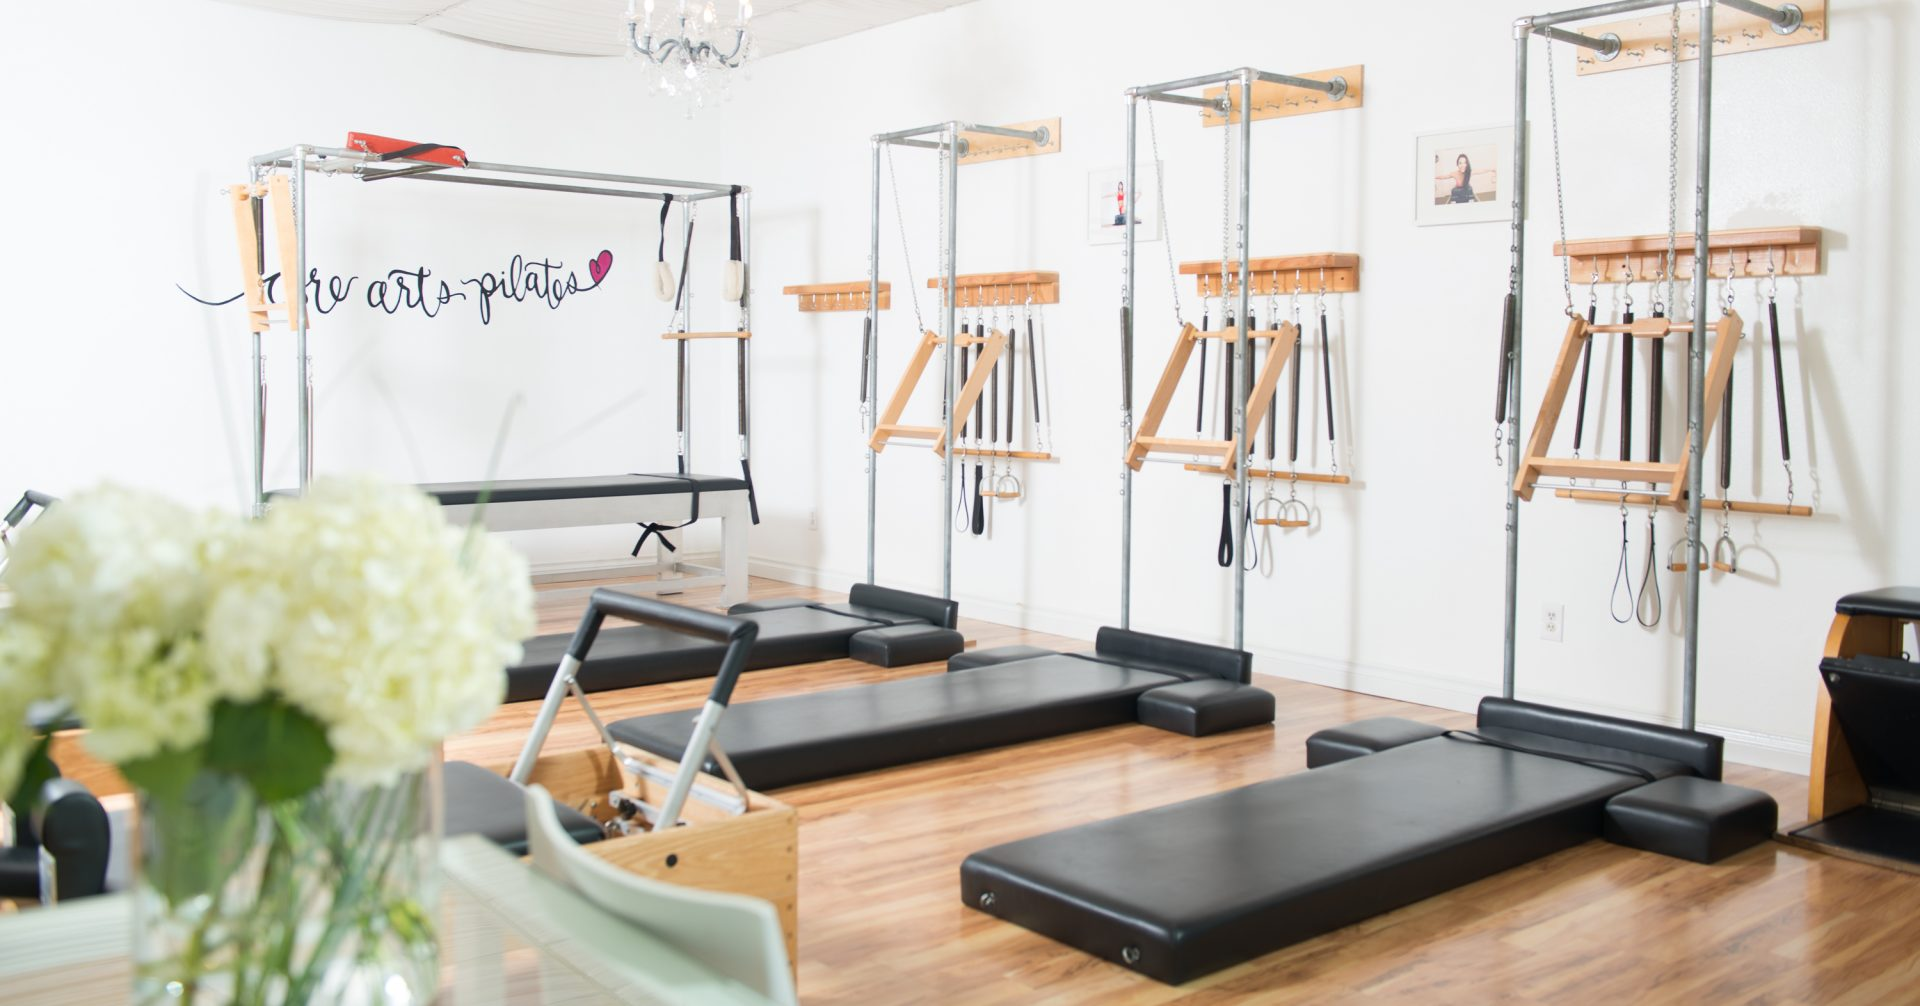 Core Arts Pilates